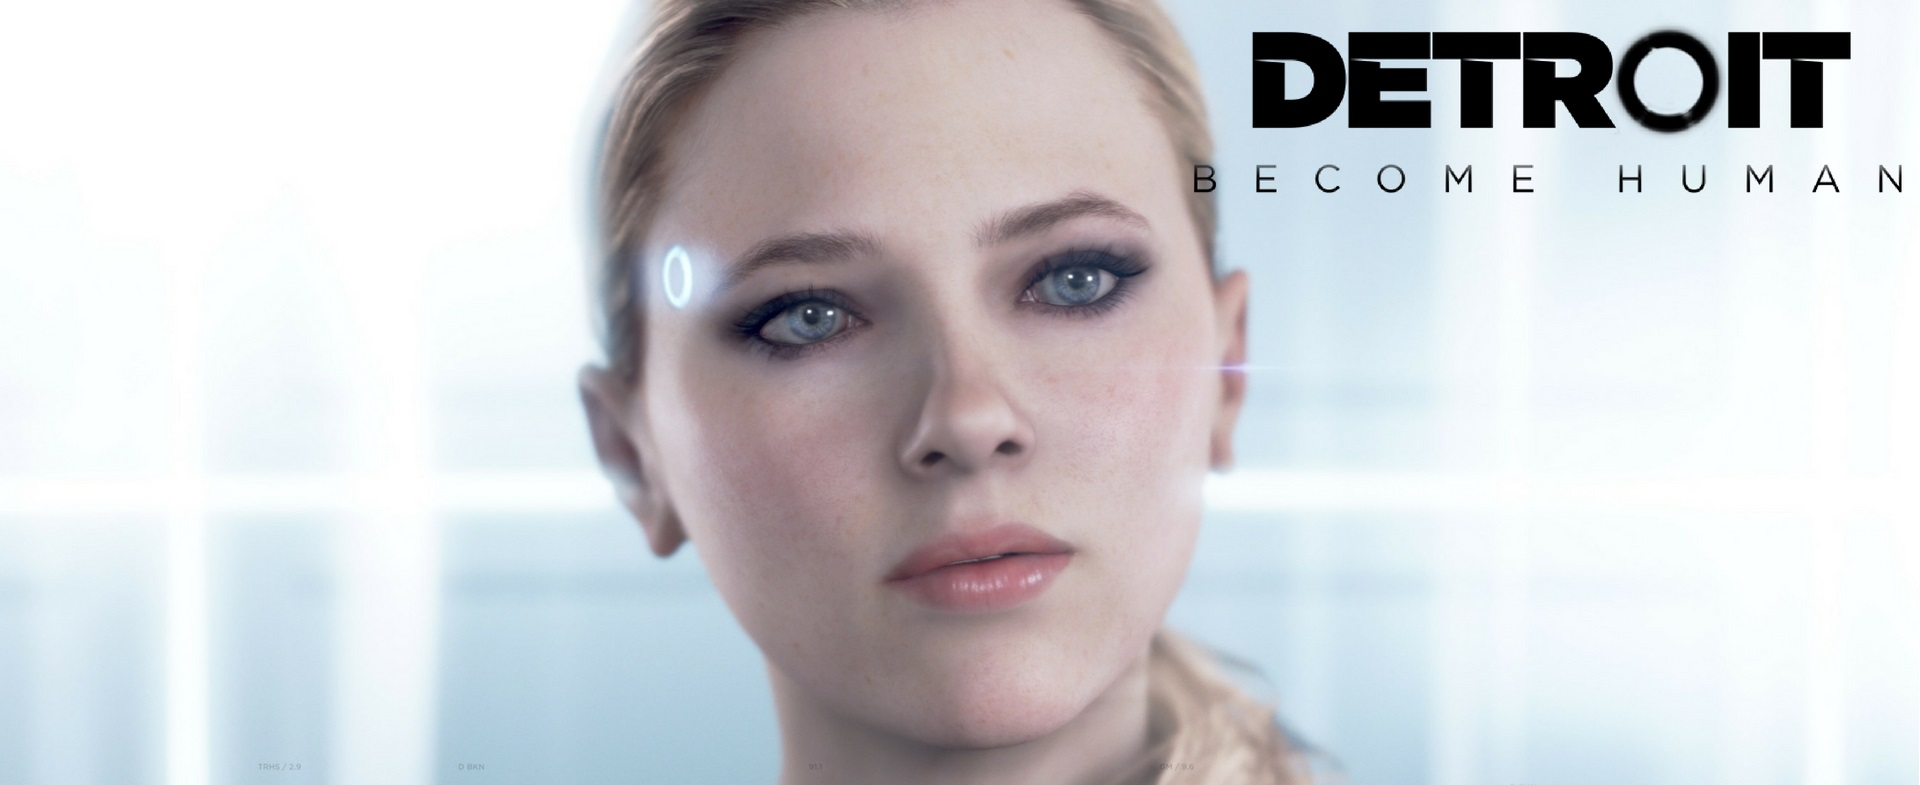 detroit become human - photo #14